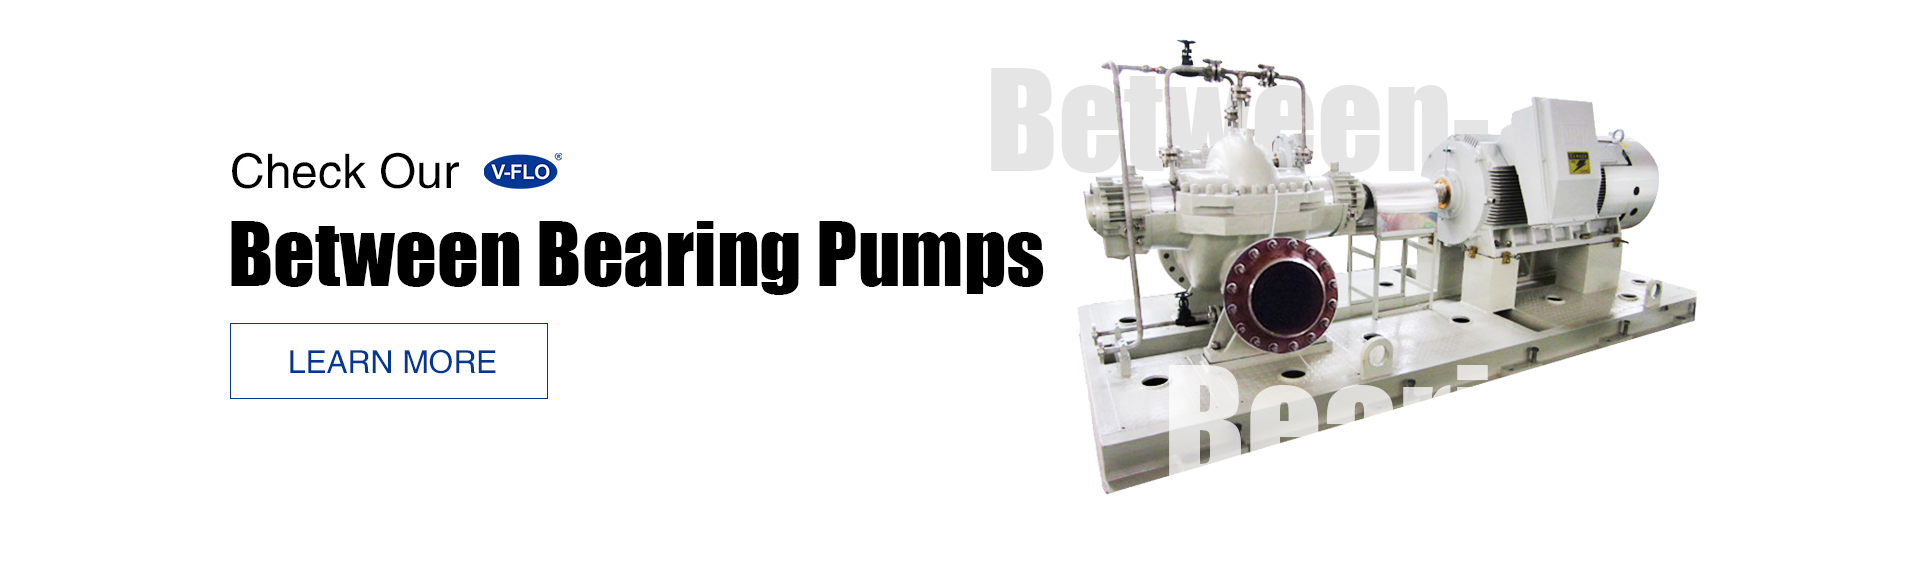 between bearing pumps